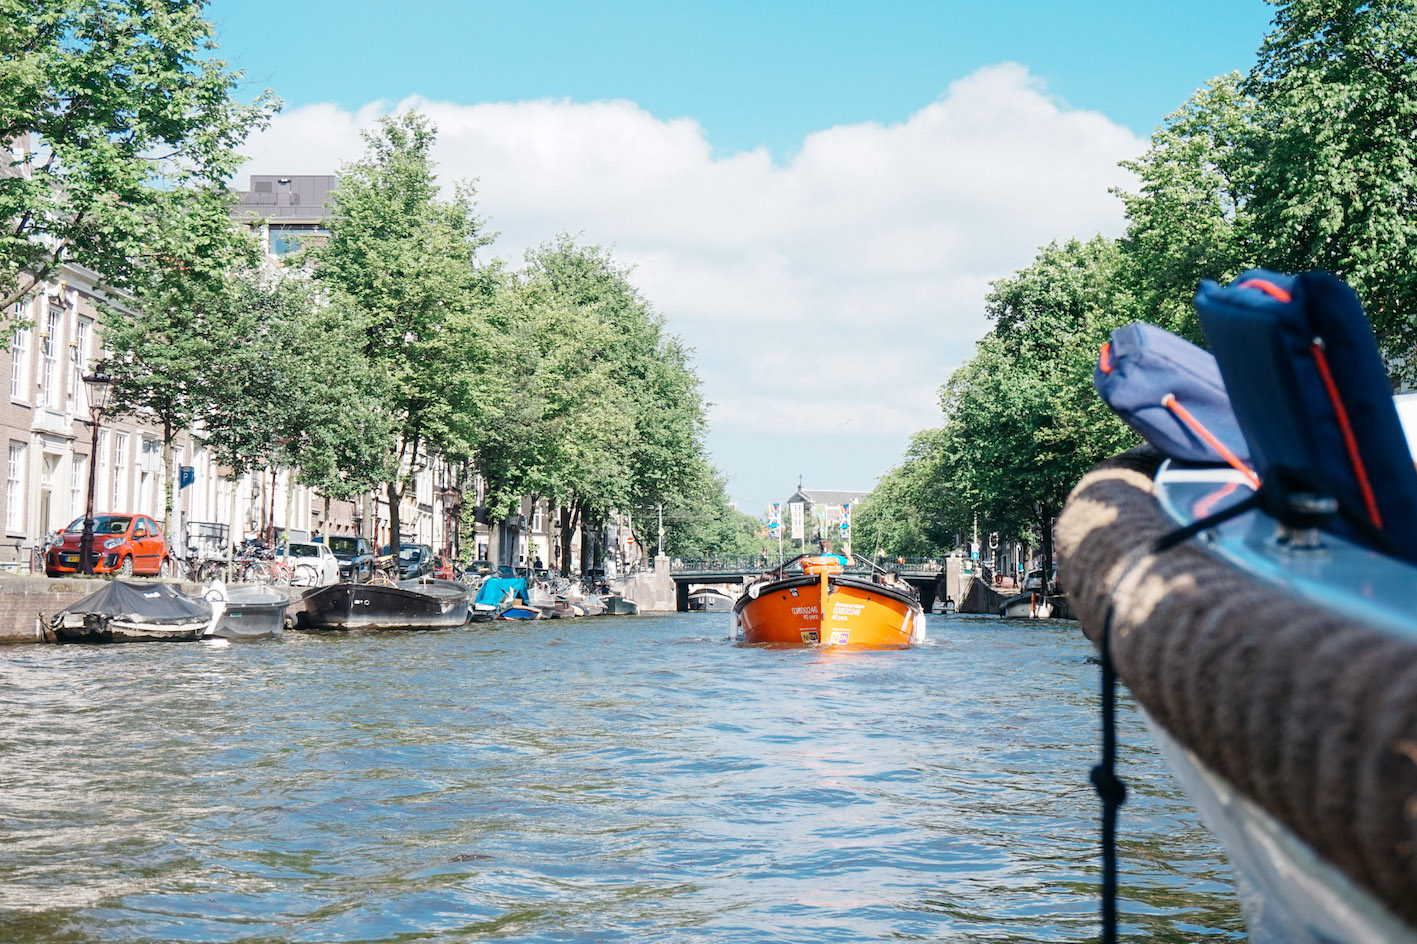 floortjeloves, THE BEST WAY TO EXPERIENCE AMSTERDAM, blue boat, blue boat company, Amsterdam, amsterdam canal cruise, canal cruise, amsterdam canals, cruise, canals, boat, amsterdam experience, what to do in amsterdam, what to do